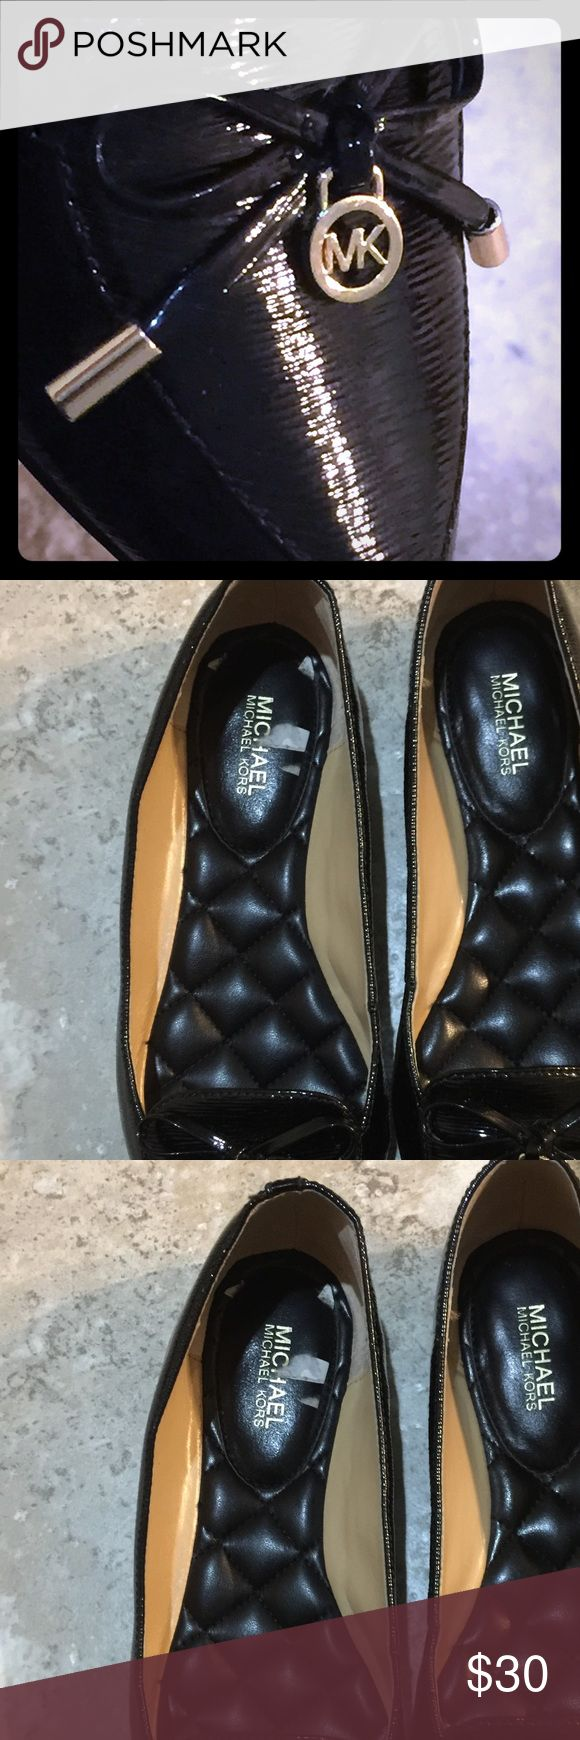 Michael Kors - Black Textured Patent flats New - Reposh - didnt fit but unable to return • runs small for a size 6, best for a size 5 • never worn, only tried on • beautiful staple • gold detail on black textured patent • NOTE: SORRY FOR THE SHOTTY PICTURES, POSH APP IS ACTING UP AND WON'T CROP PROPERLY; UPDATED PICTURES ON 8.16.17 MICHAEL Michael Kors Shoes Flats & Loafers